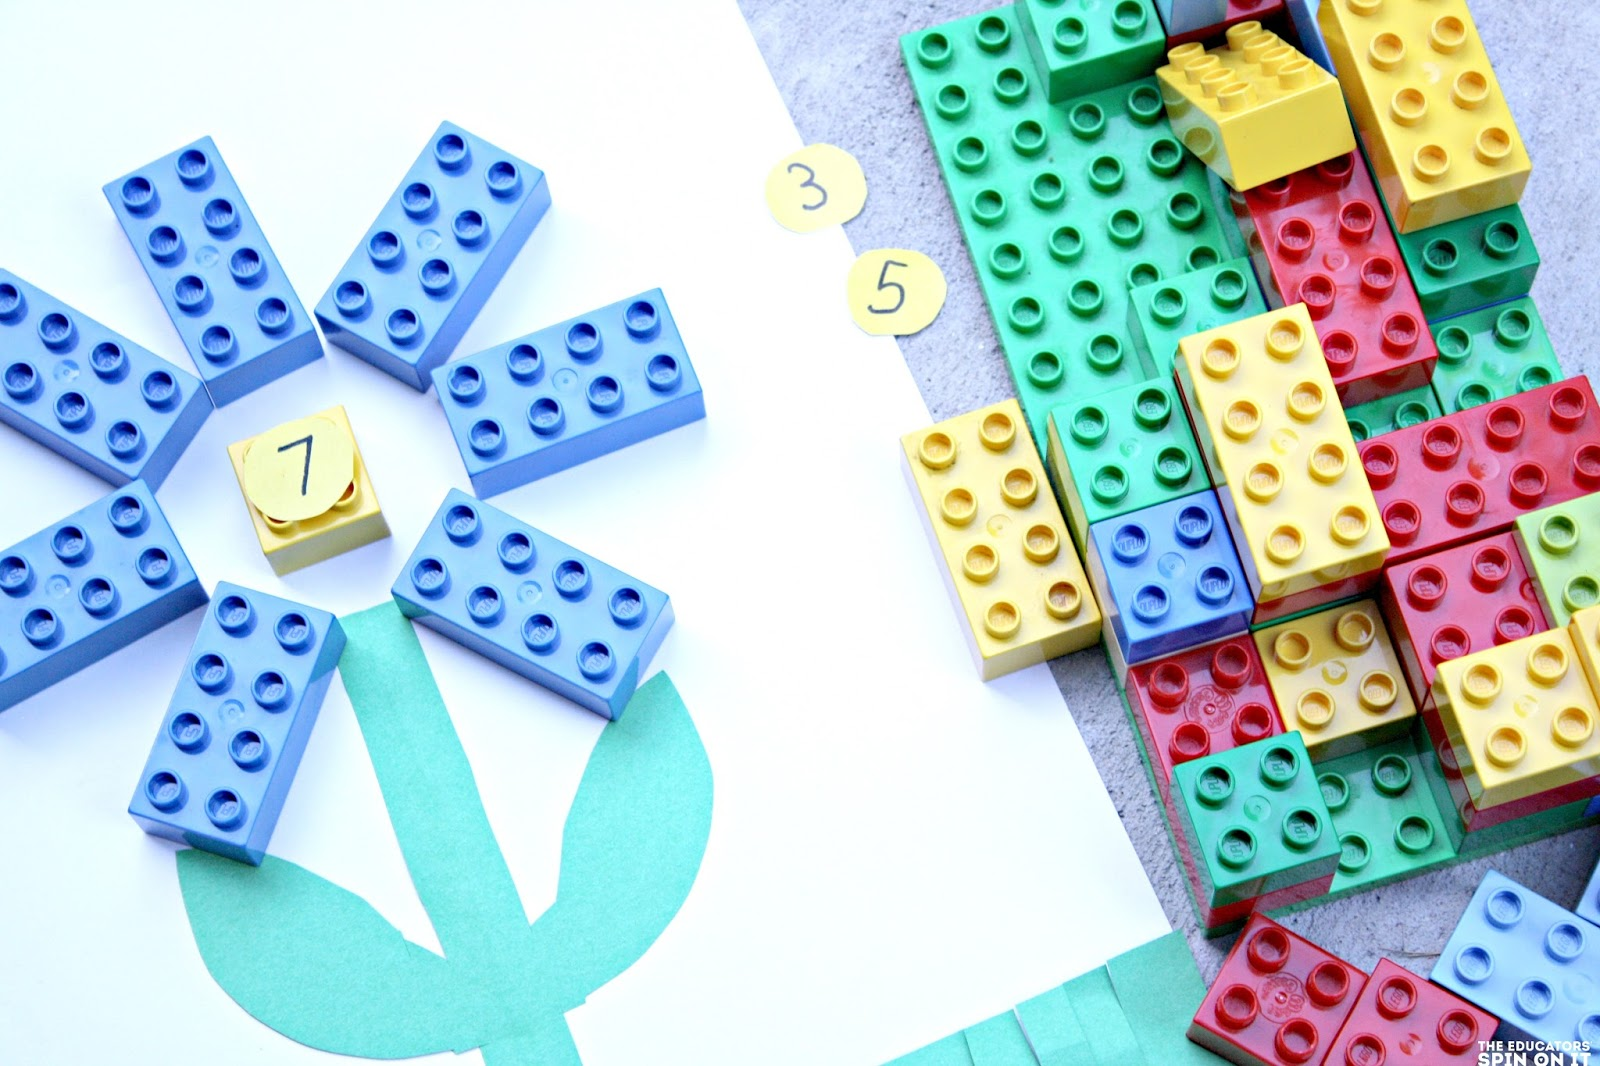 Preschool LEGO inspired Math activity; number recognition and number sense